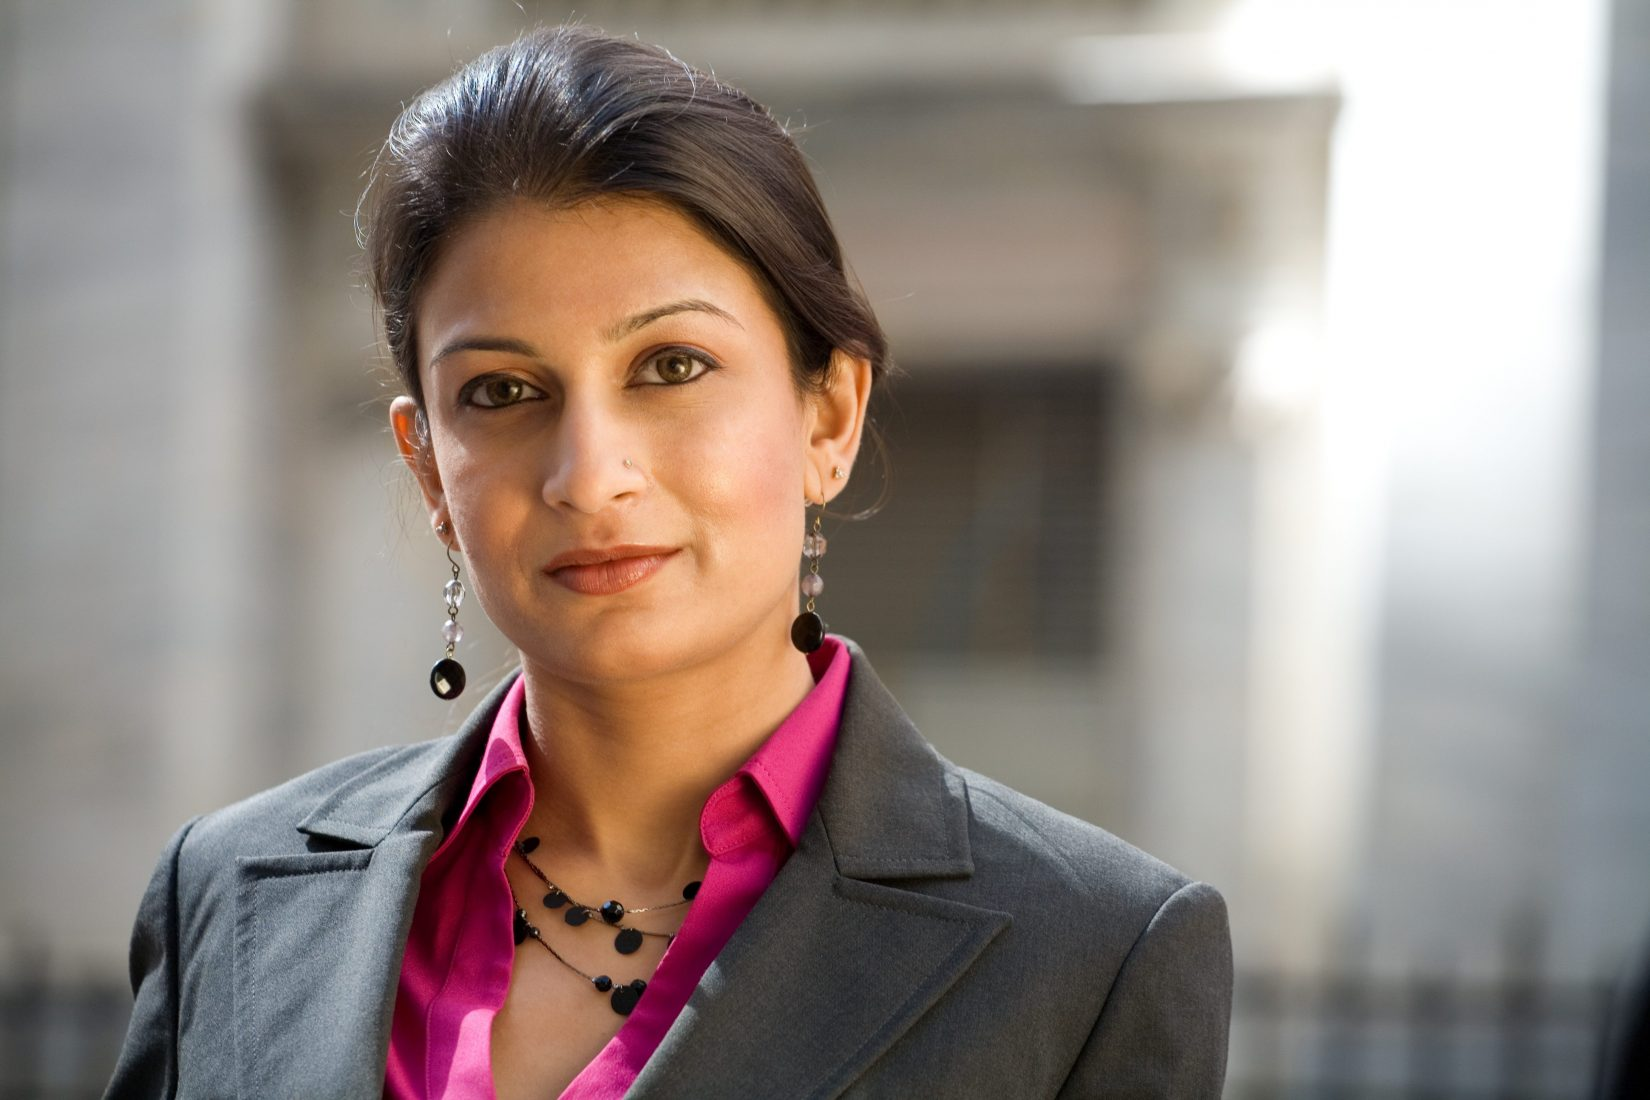 Friendly Indian Businesswoman Wearing a Suit in City Setting